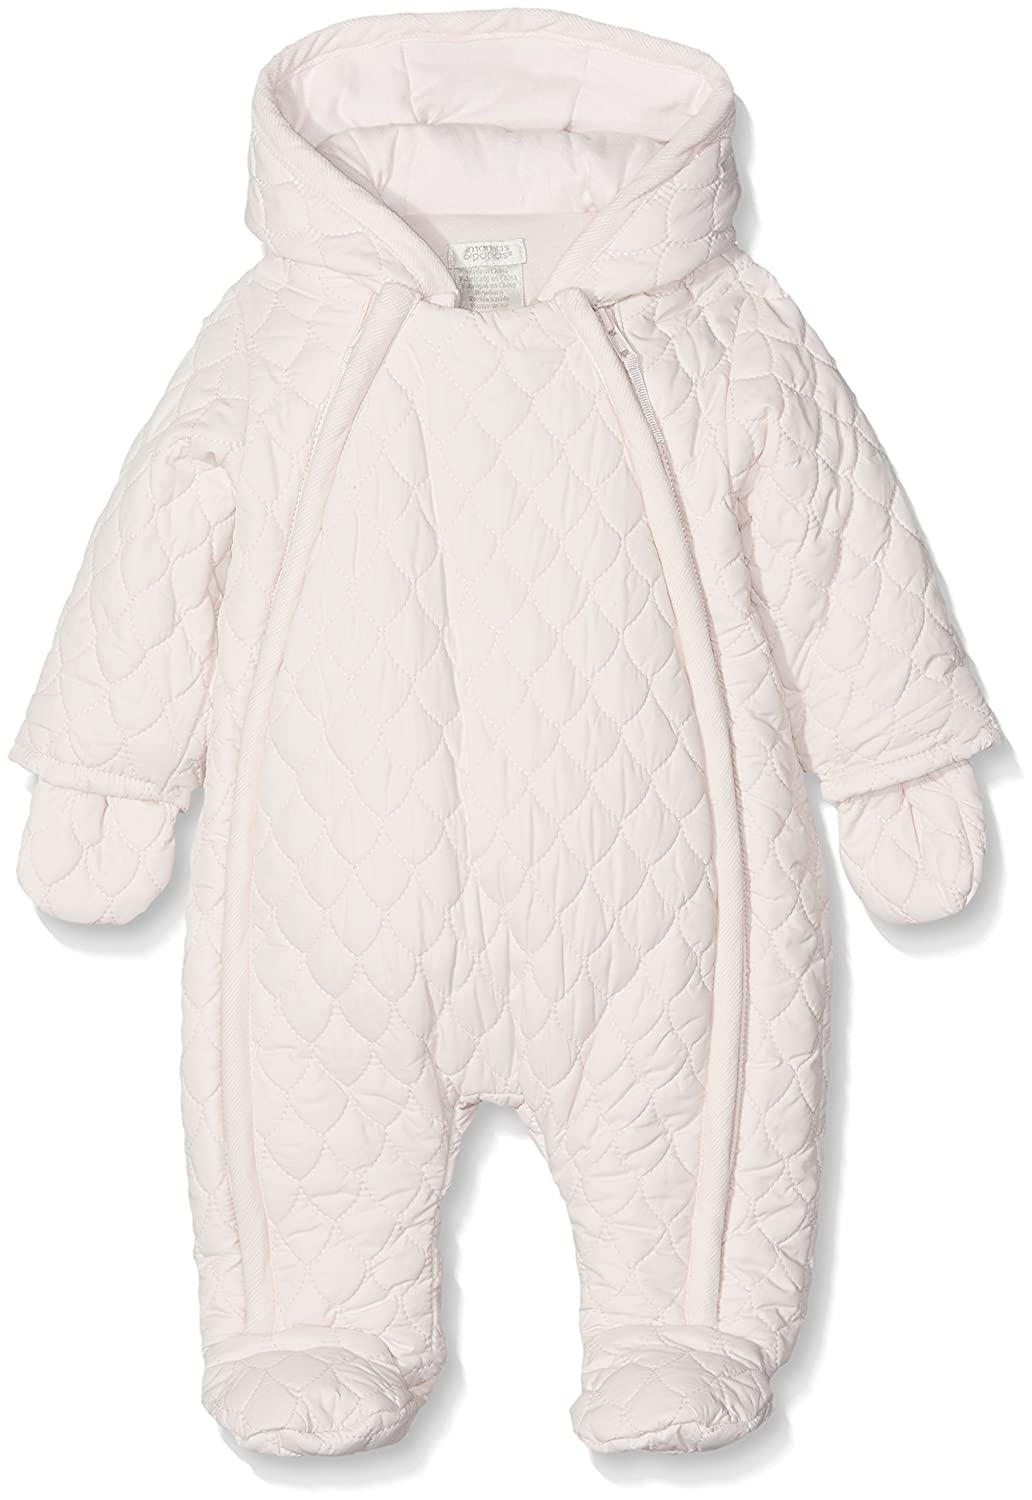 Mamas & Papas Baby Girls' Quilted Pramsuit Pink Snowsuit Mamas and Papas